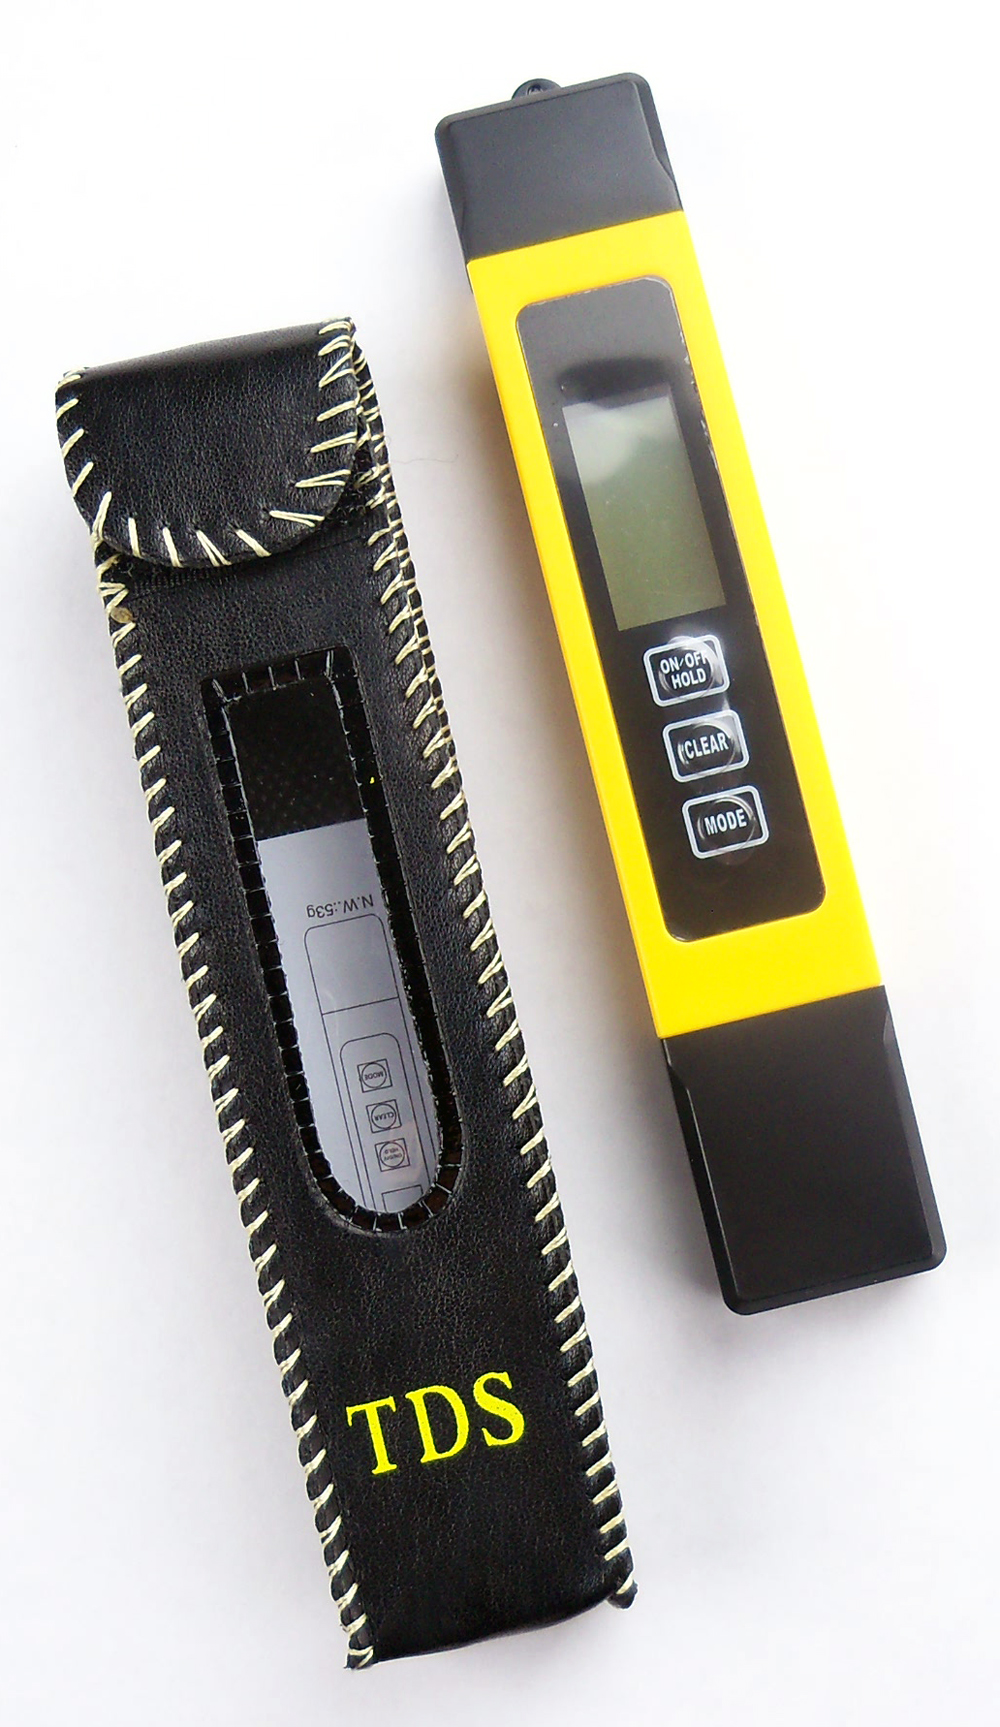 CWS TDS Meter Pro 3-In-1